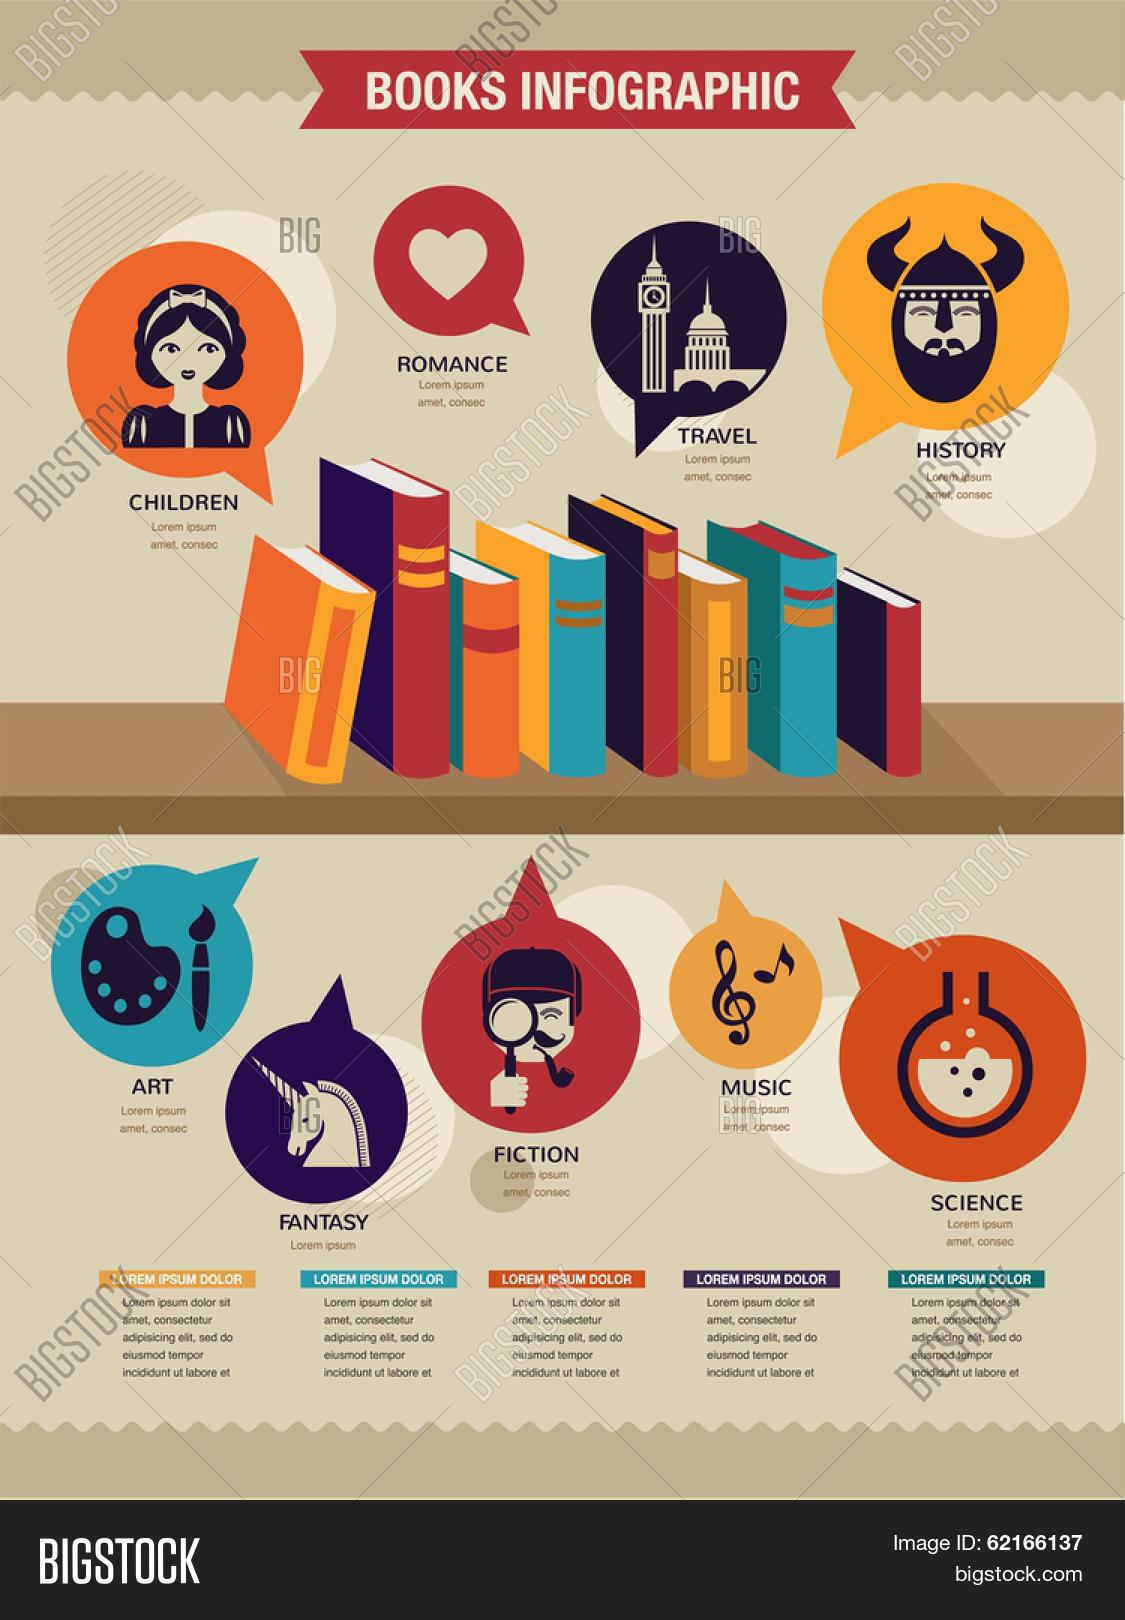 Best infographic design books